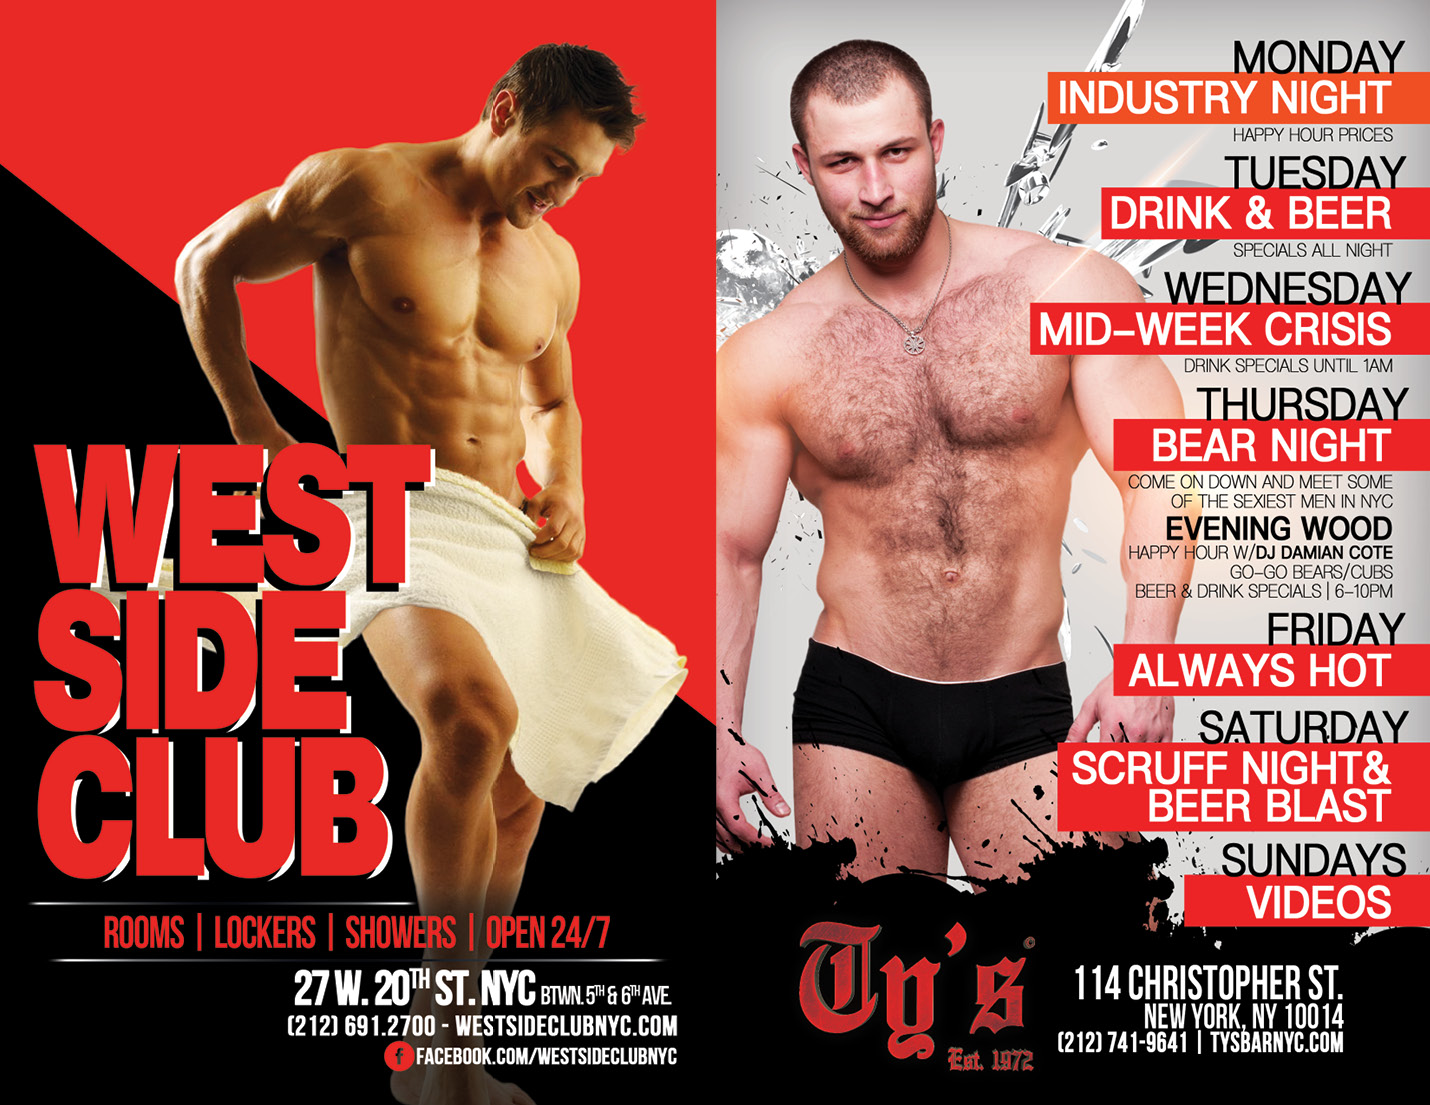 get out gay magazine issue 277 august 17 2016. Black Bedroom Furniture Sets. Home Design Ideas